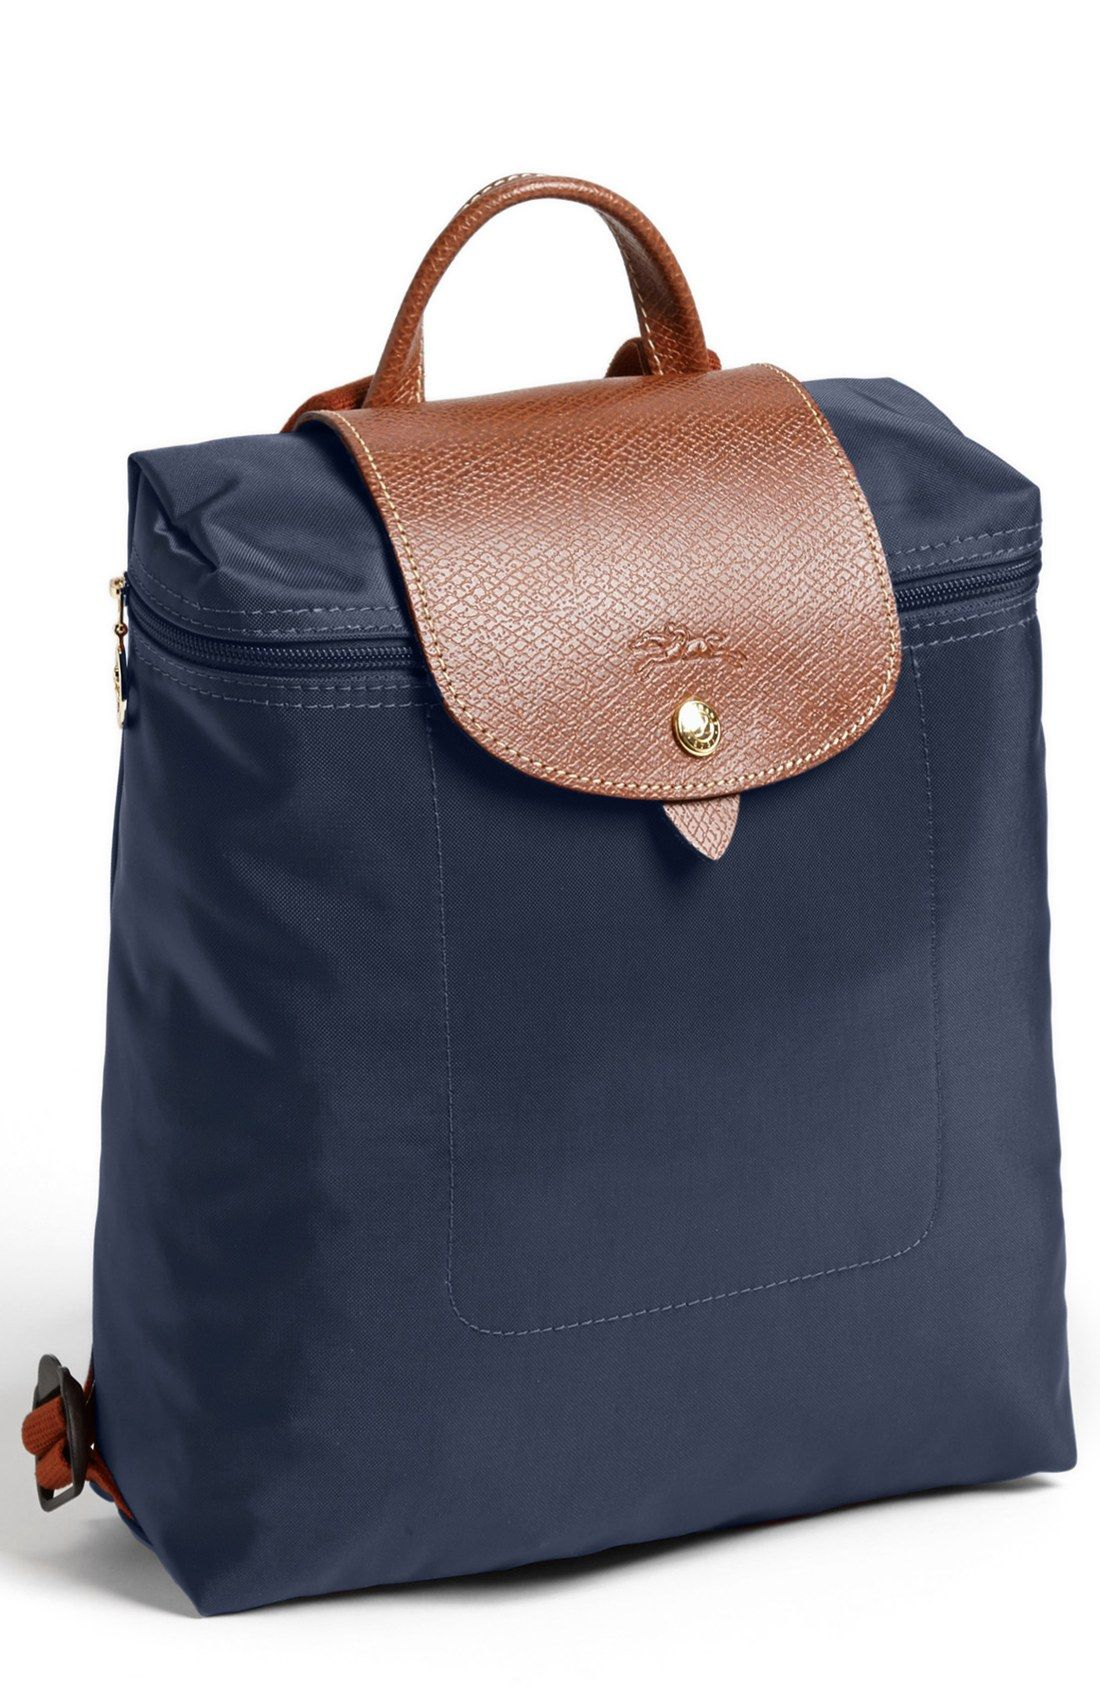 Long Champ Laukku Hinta : Longchamp le pliage navy backpack totes handbags